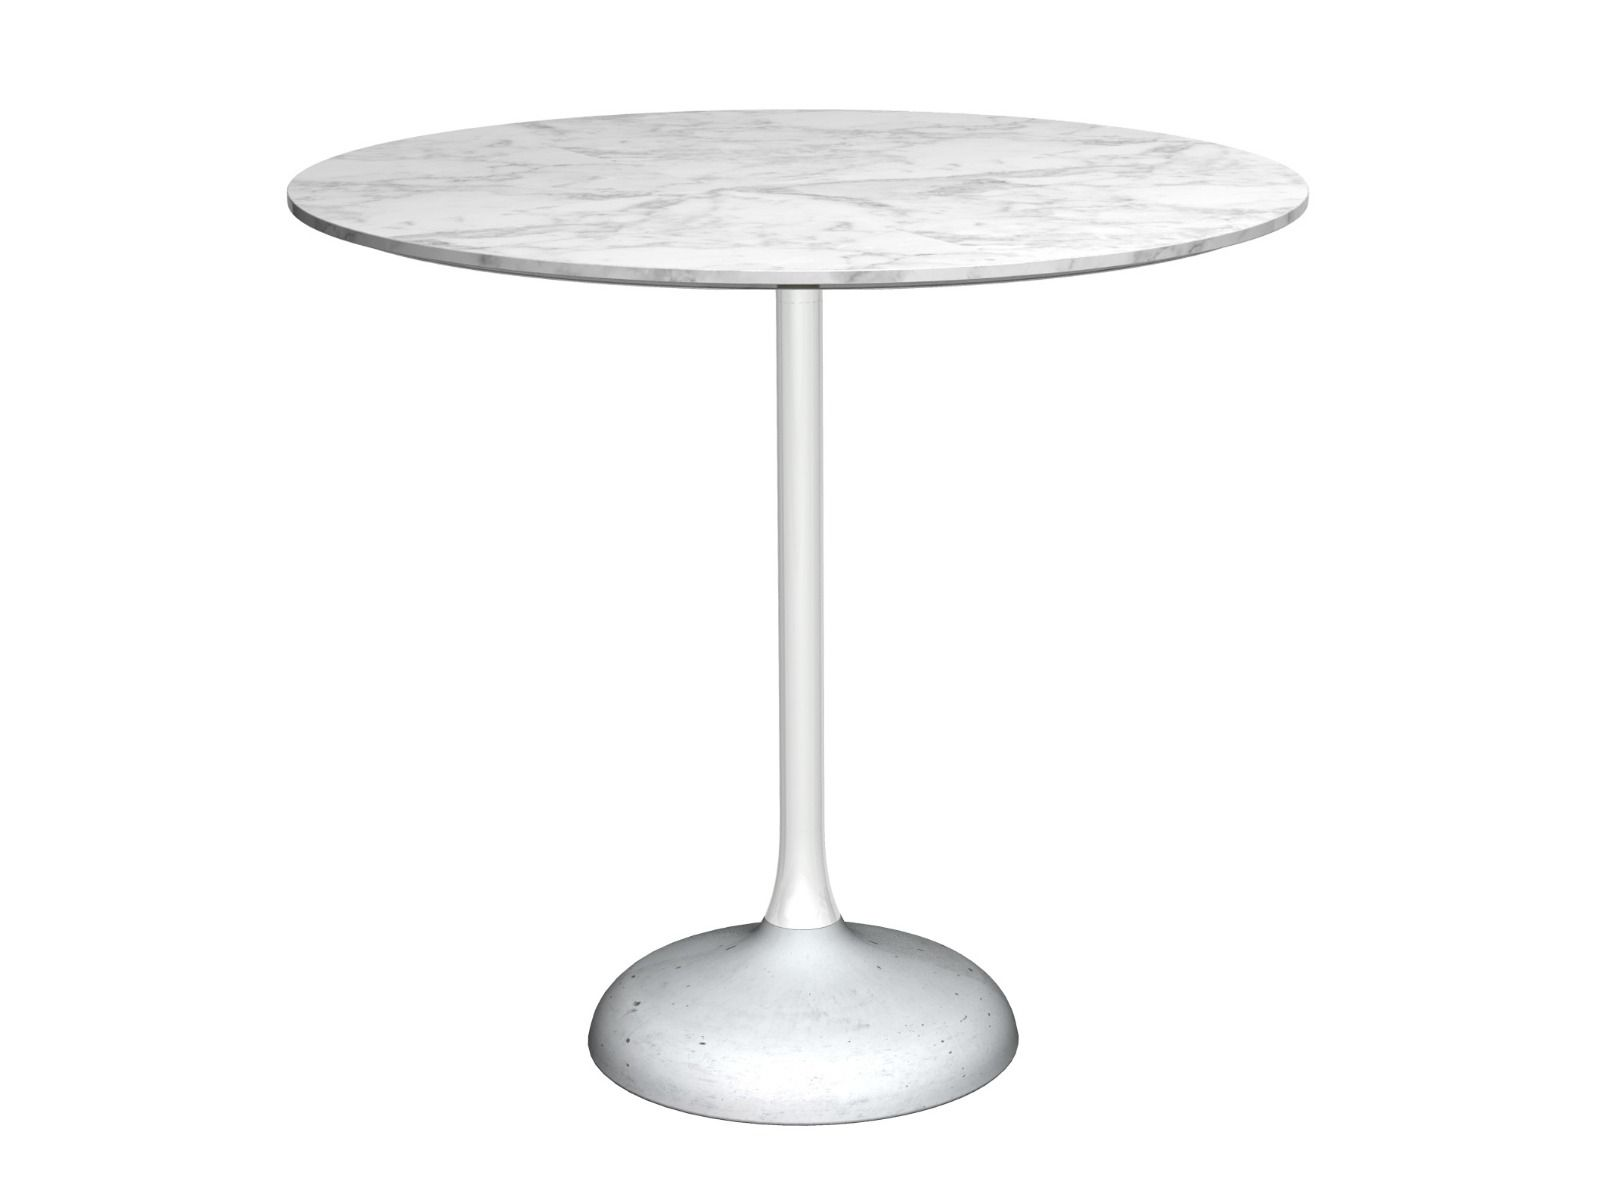 circular dining table collection from gillmore rh gillmorespace com brass swan dining table acrylic swan dining table